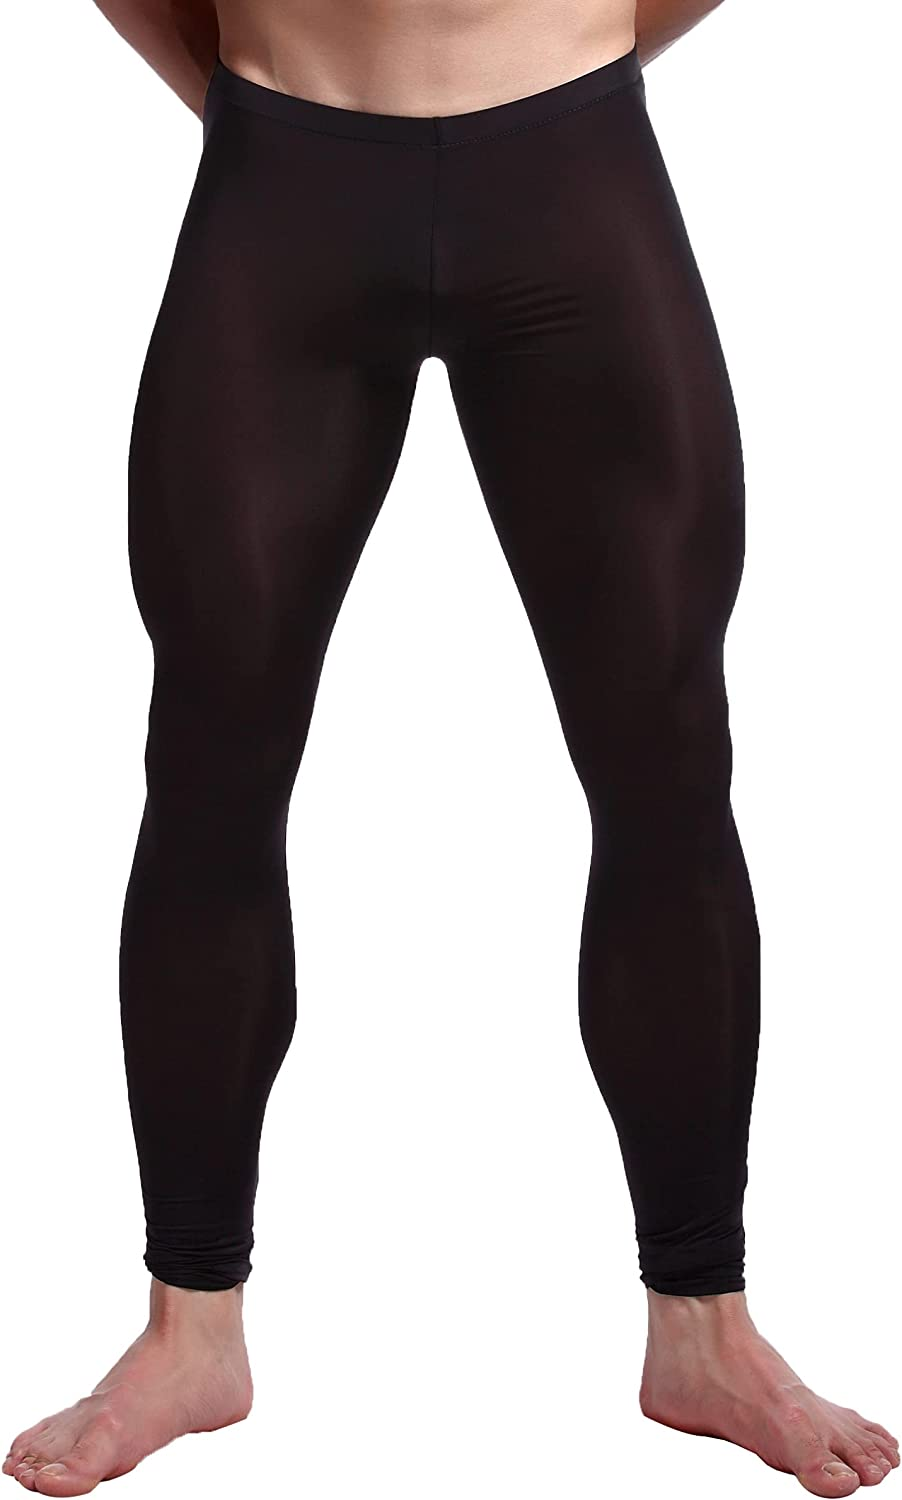 easyforever Mens Mesh See-Through Sexy Tights Compression Thermal Sport Gym Training Running Pants Yoga Leggings